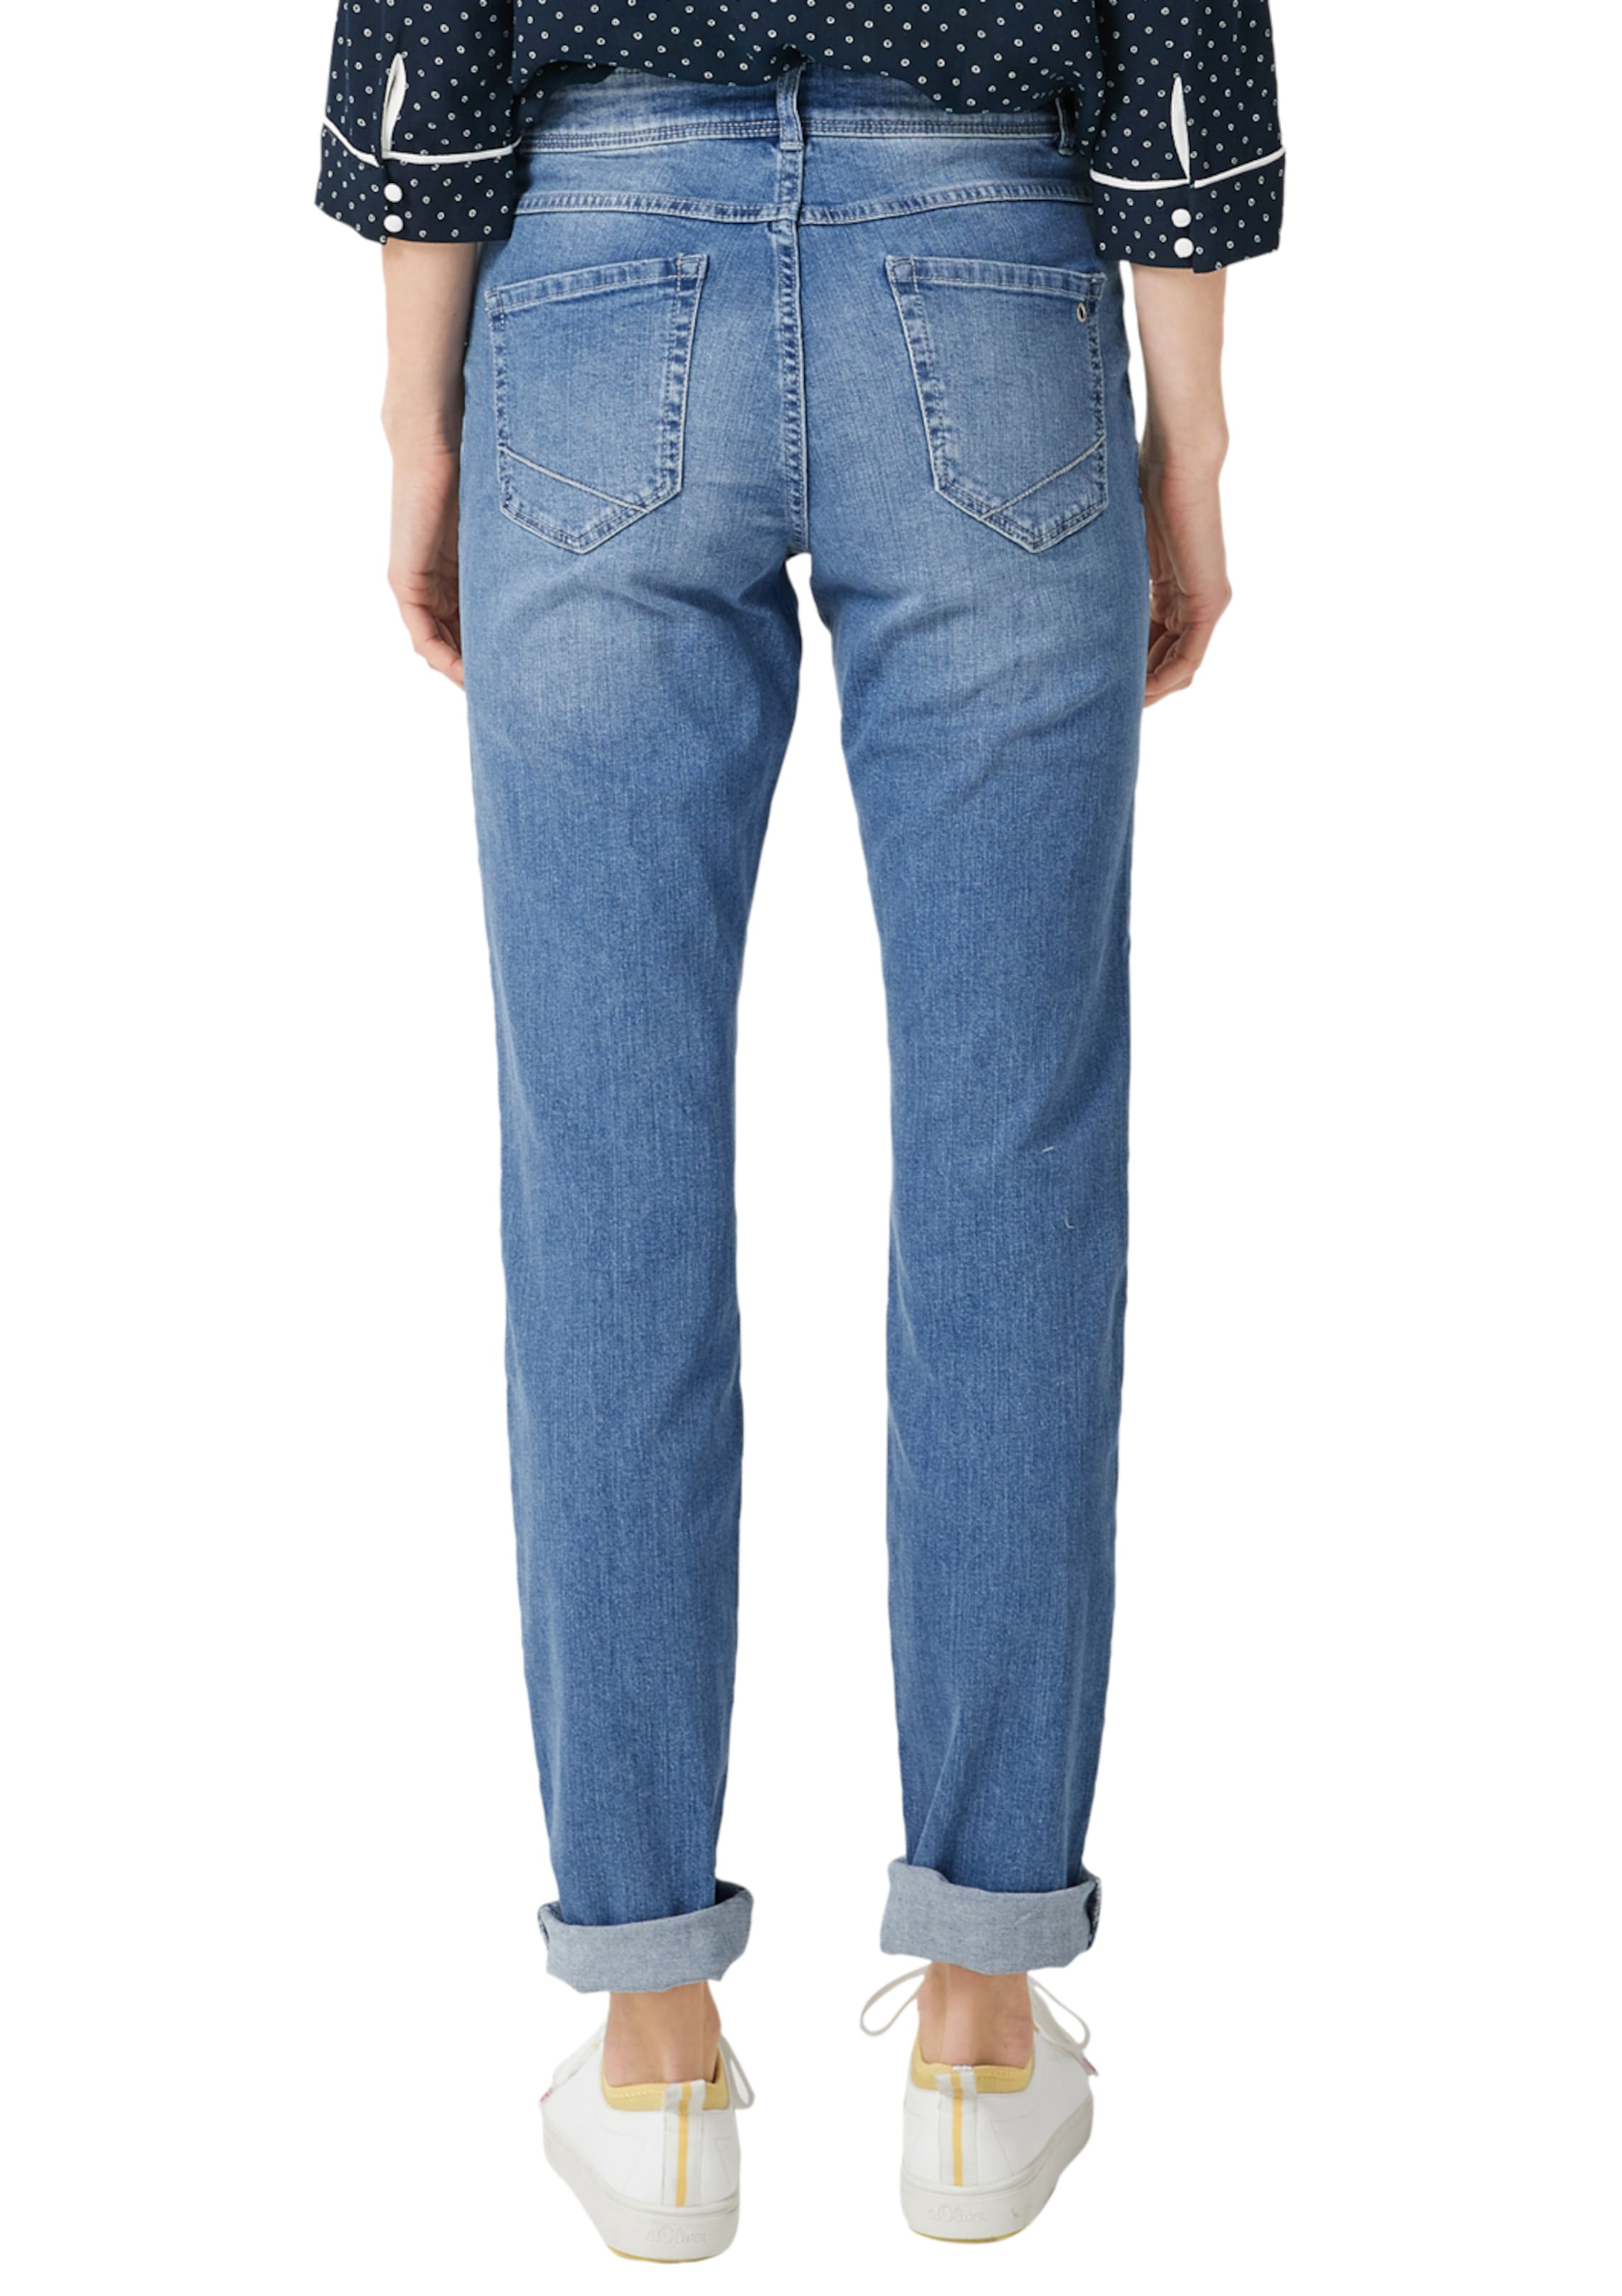 oliver Jeans S Denim Blue In hrxQCtsd